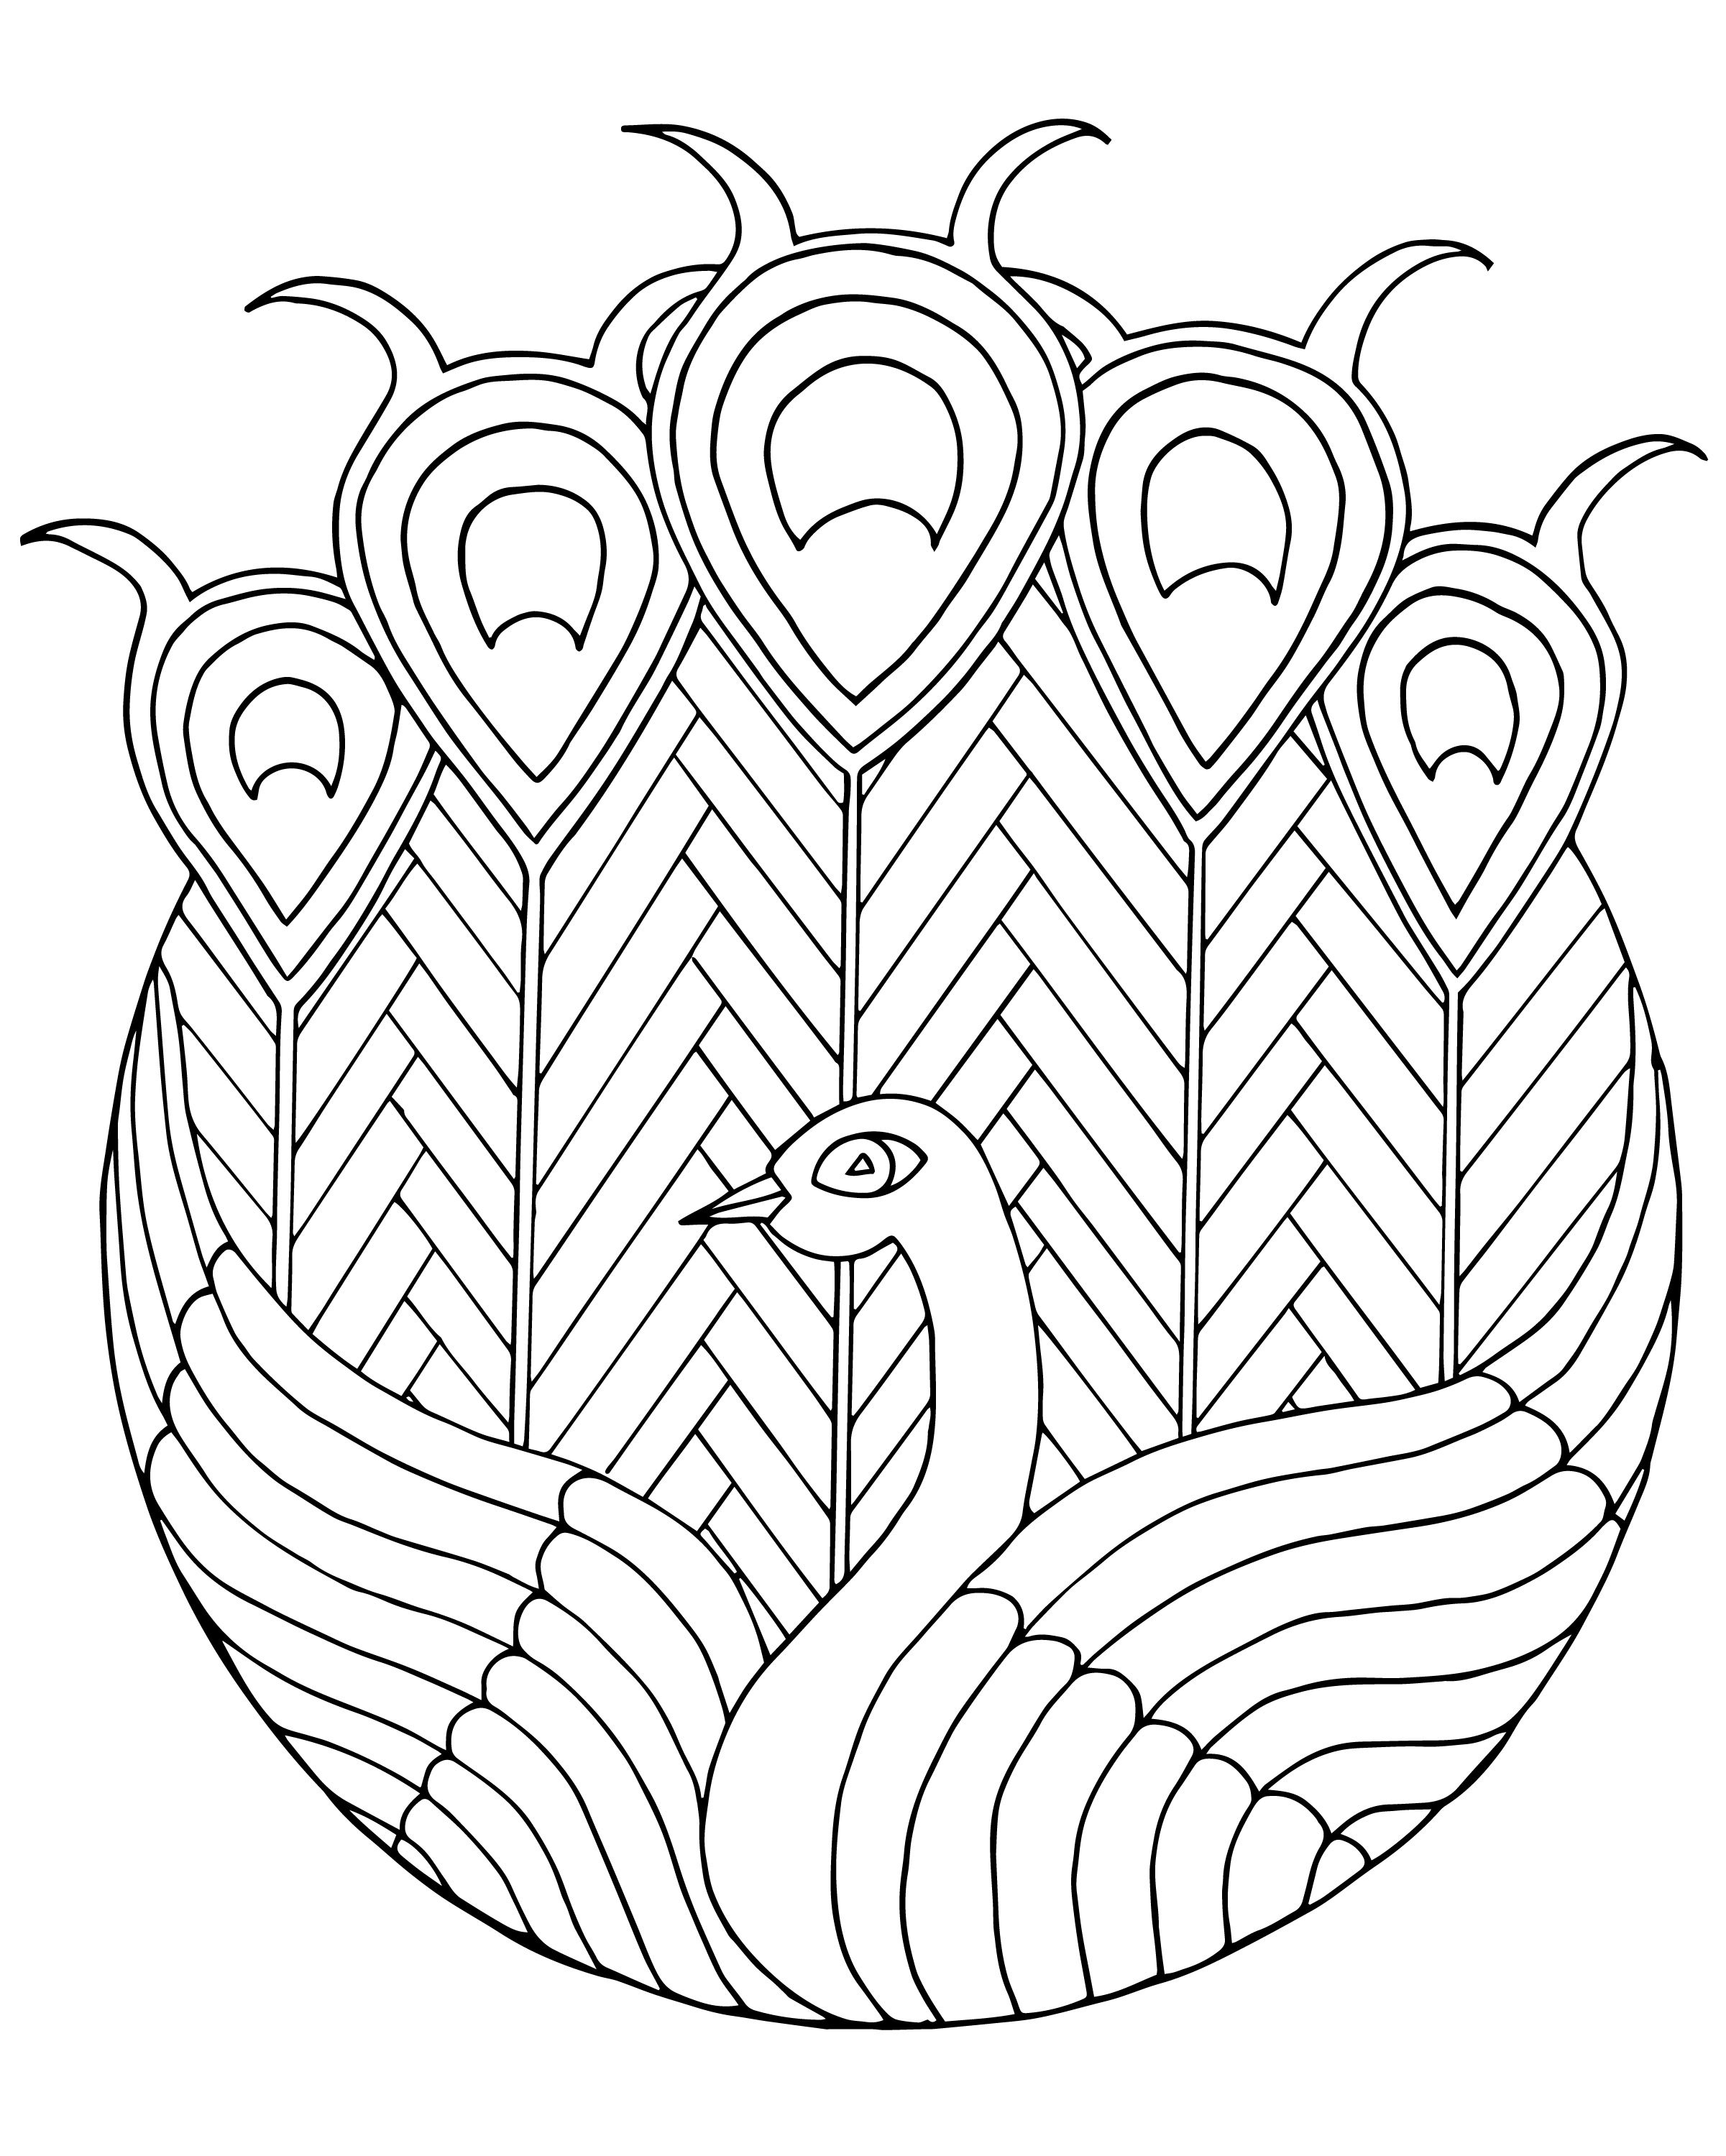 2401x3000 Peacock Stained Glass Adult Coloring Page Coloring Pages